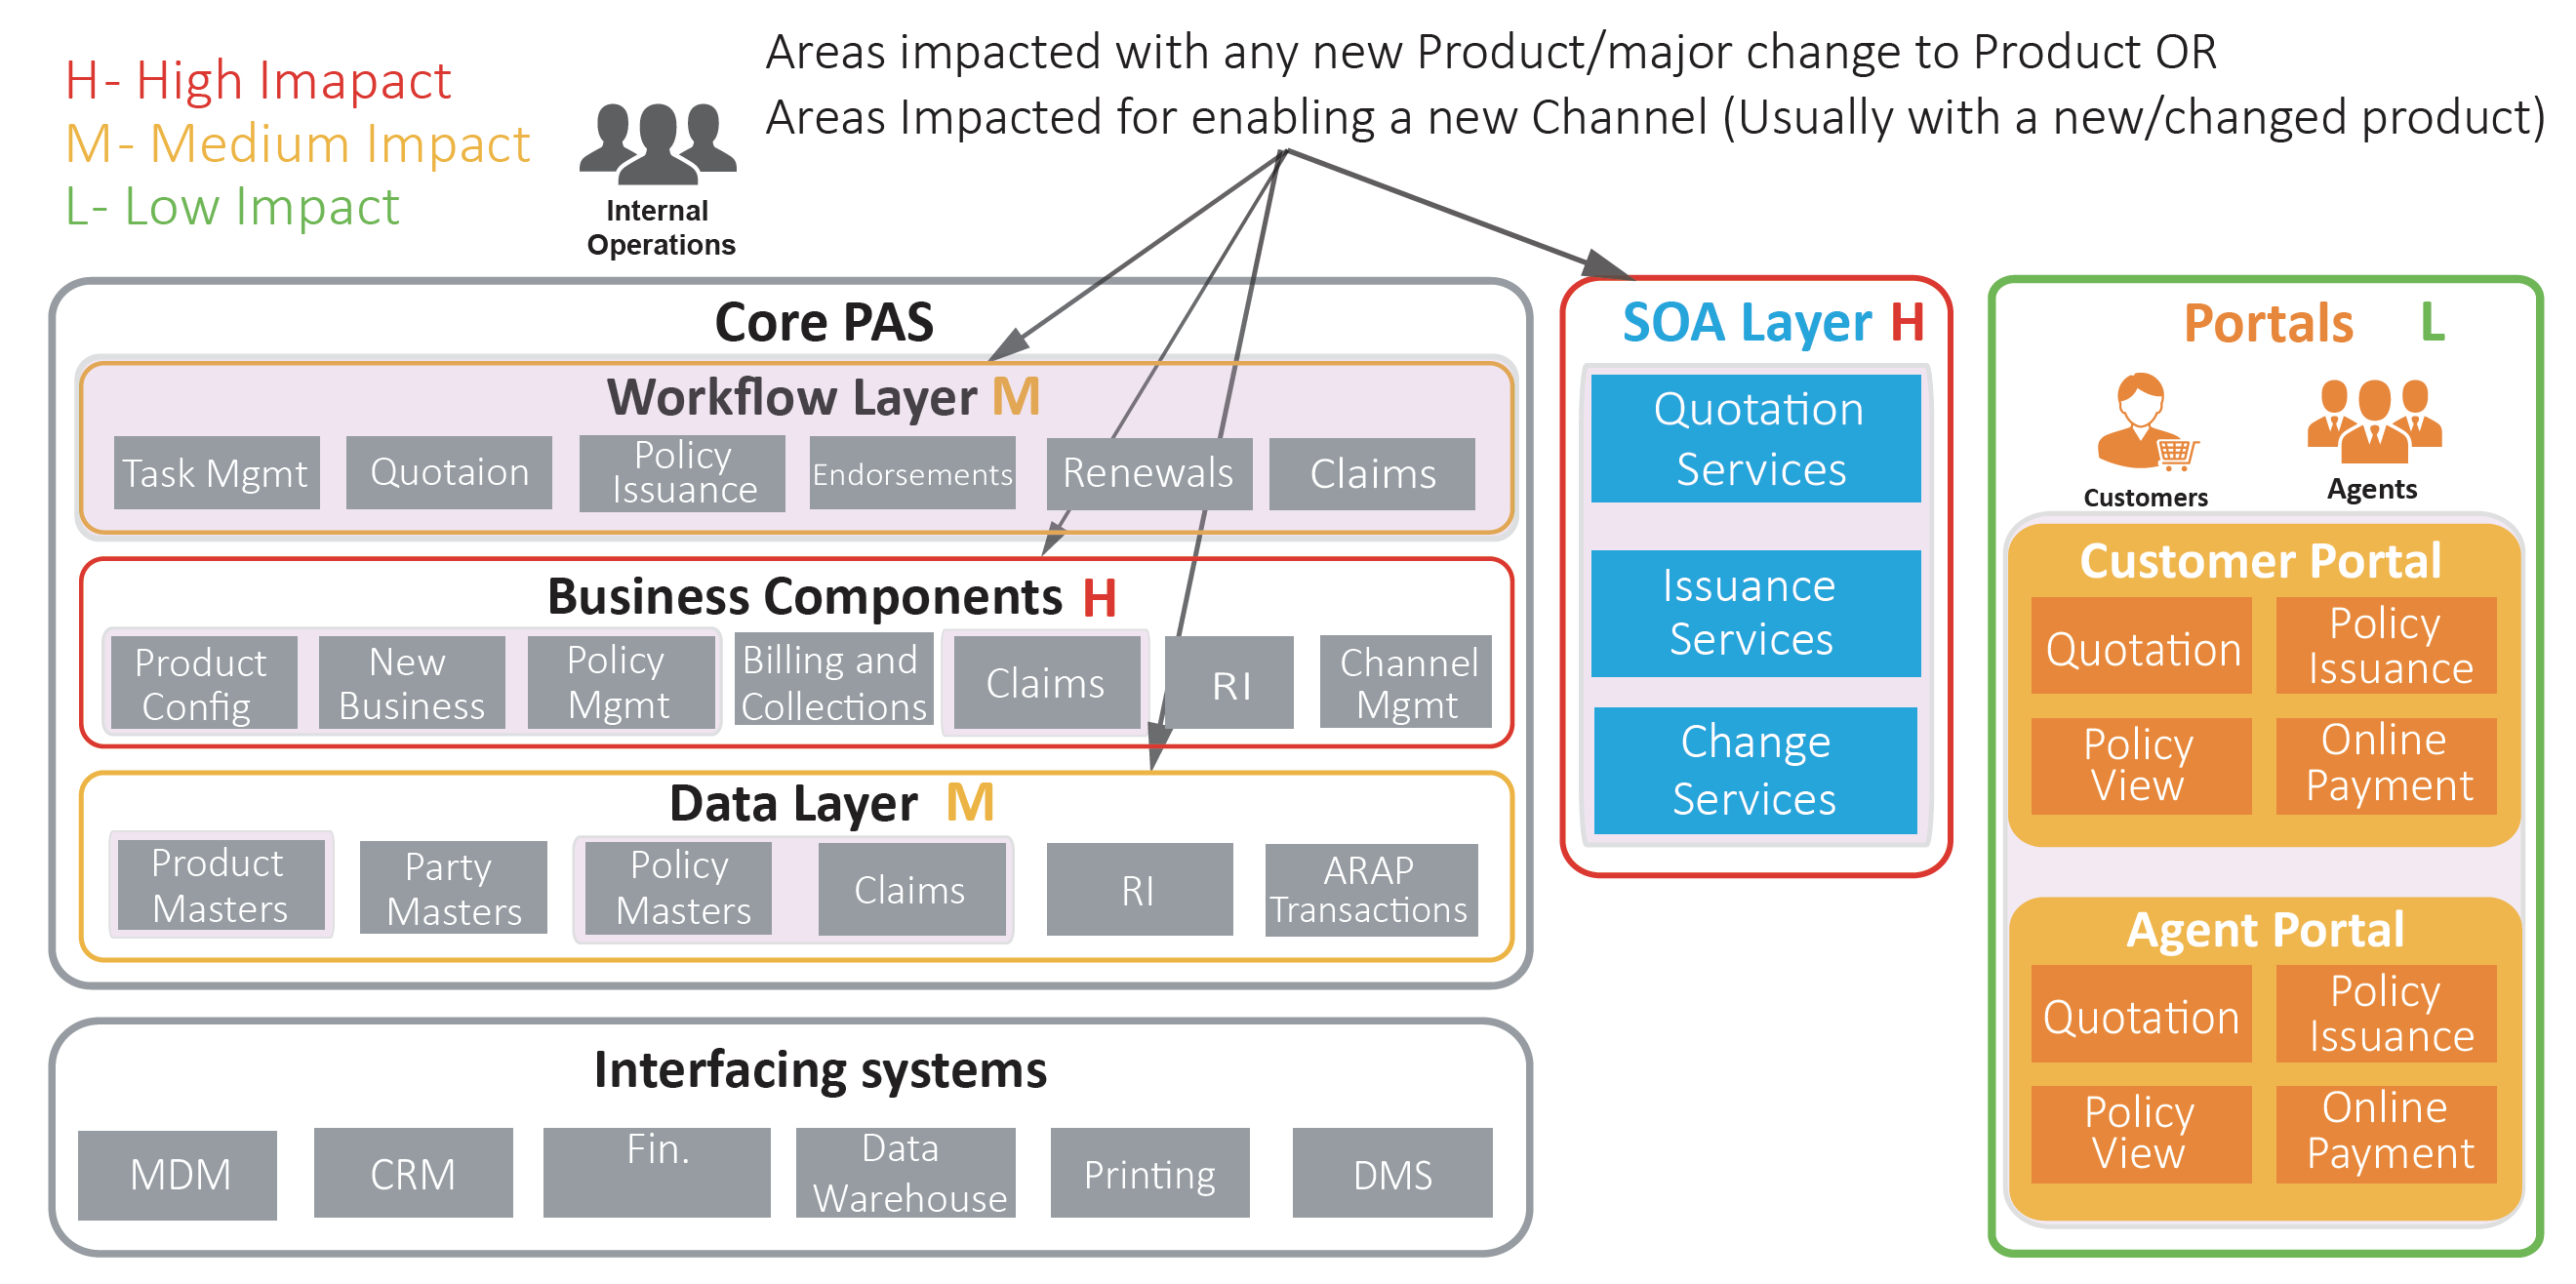 The extent of change needed in a typical Traditional Core PAS architecture to add/change product or enable new channels